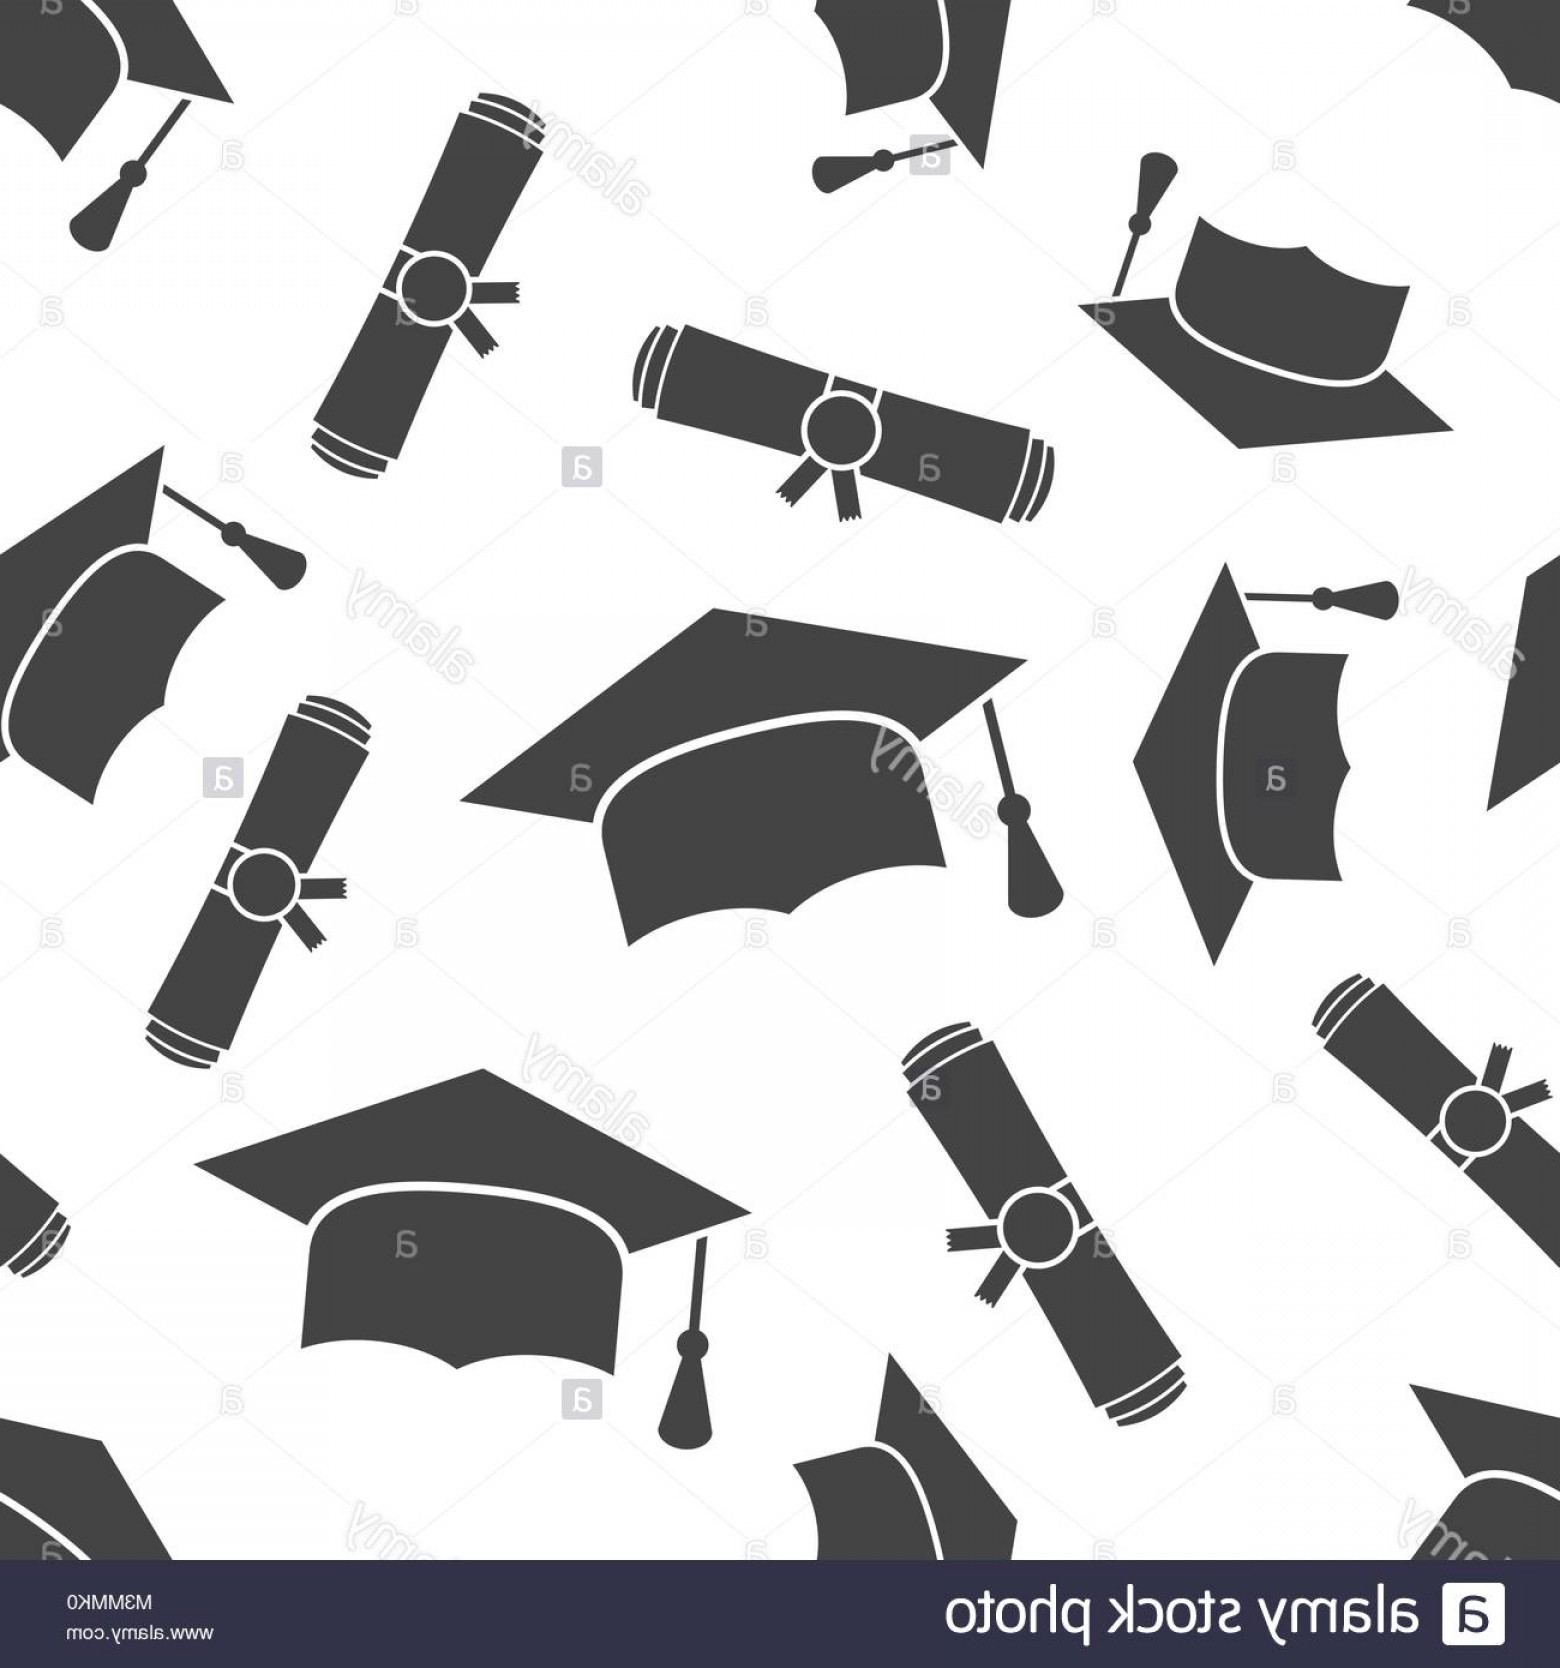 Diploma Icon Vector: Stock Photo Graduation Cap And Diploma Rolled Scroll Seamless Pattern Background